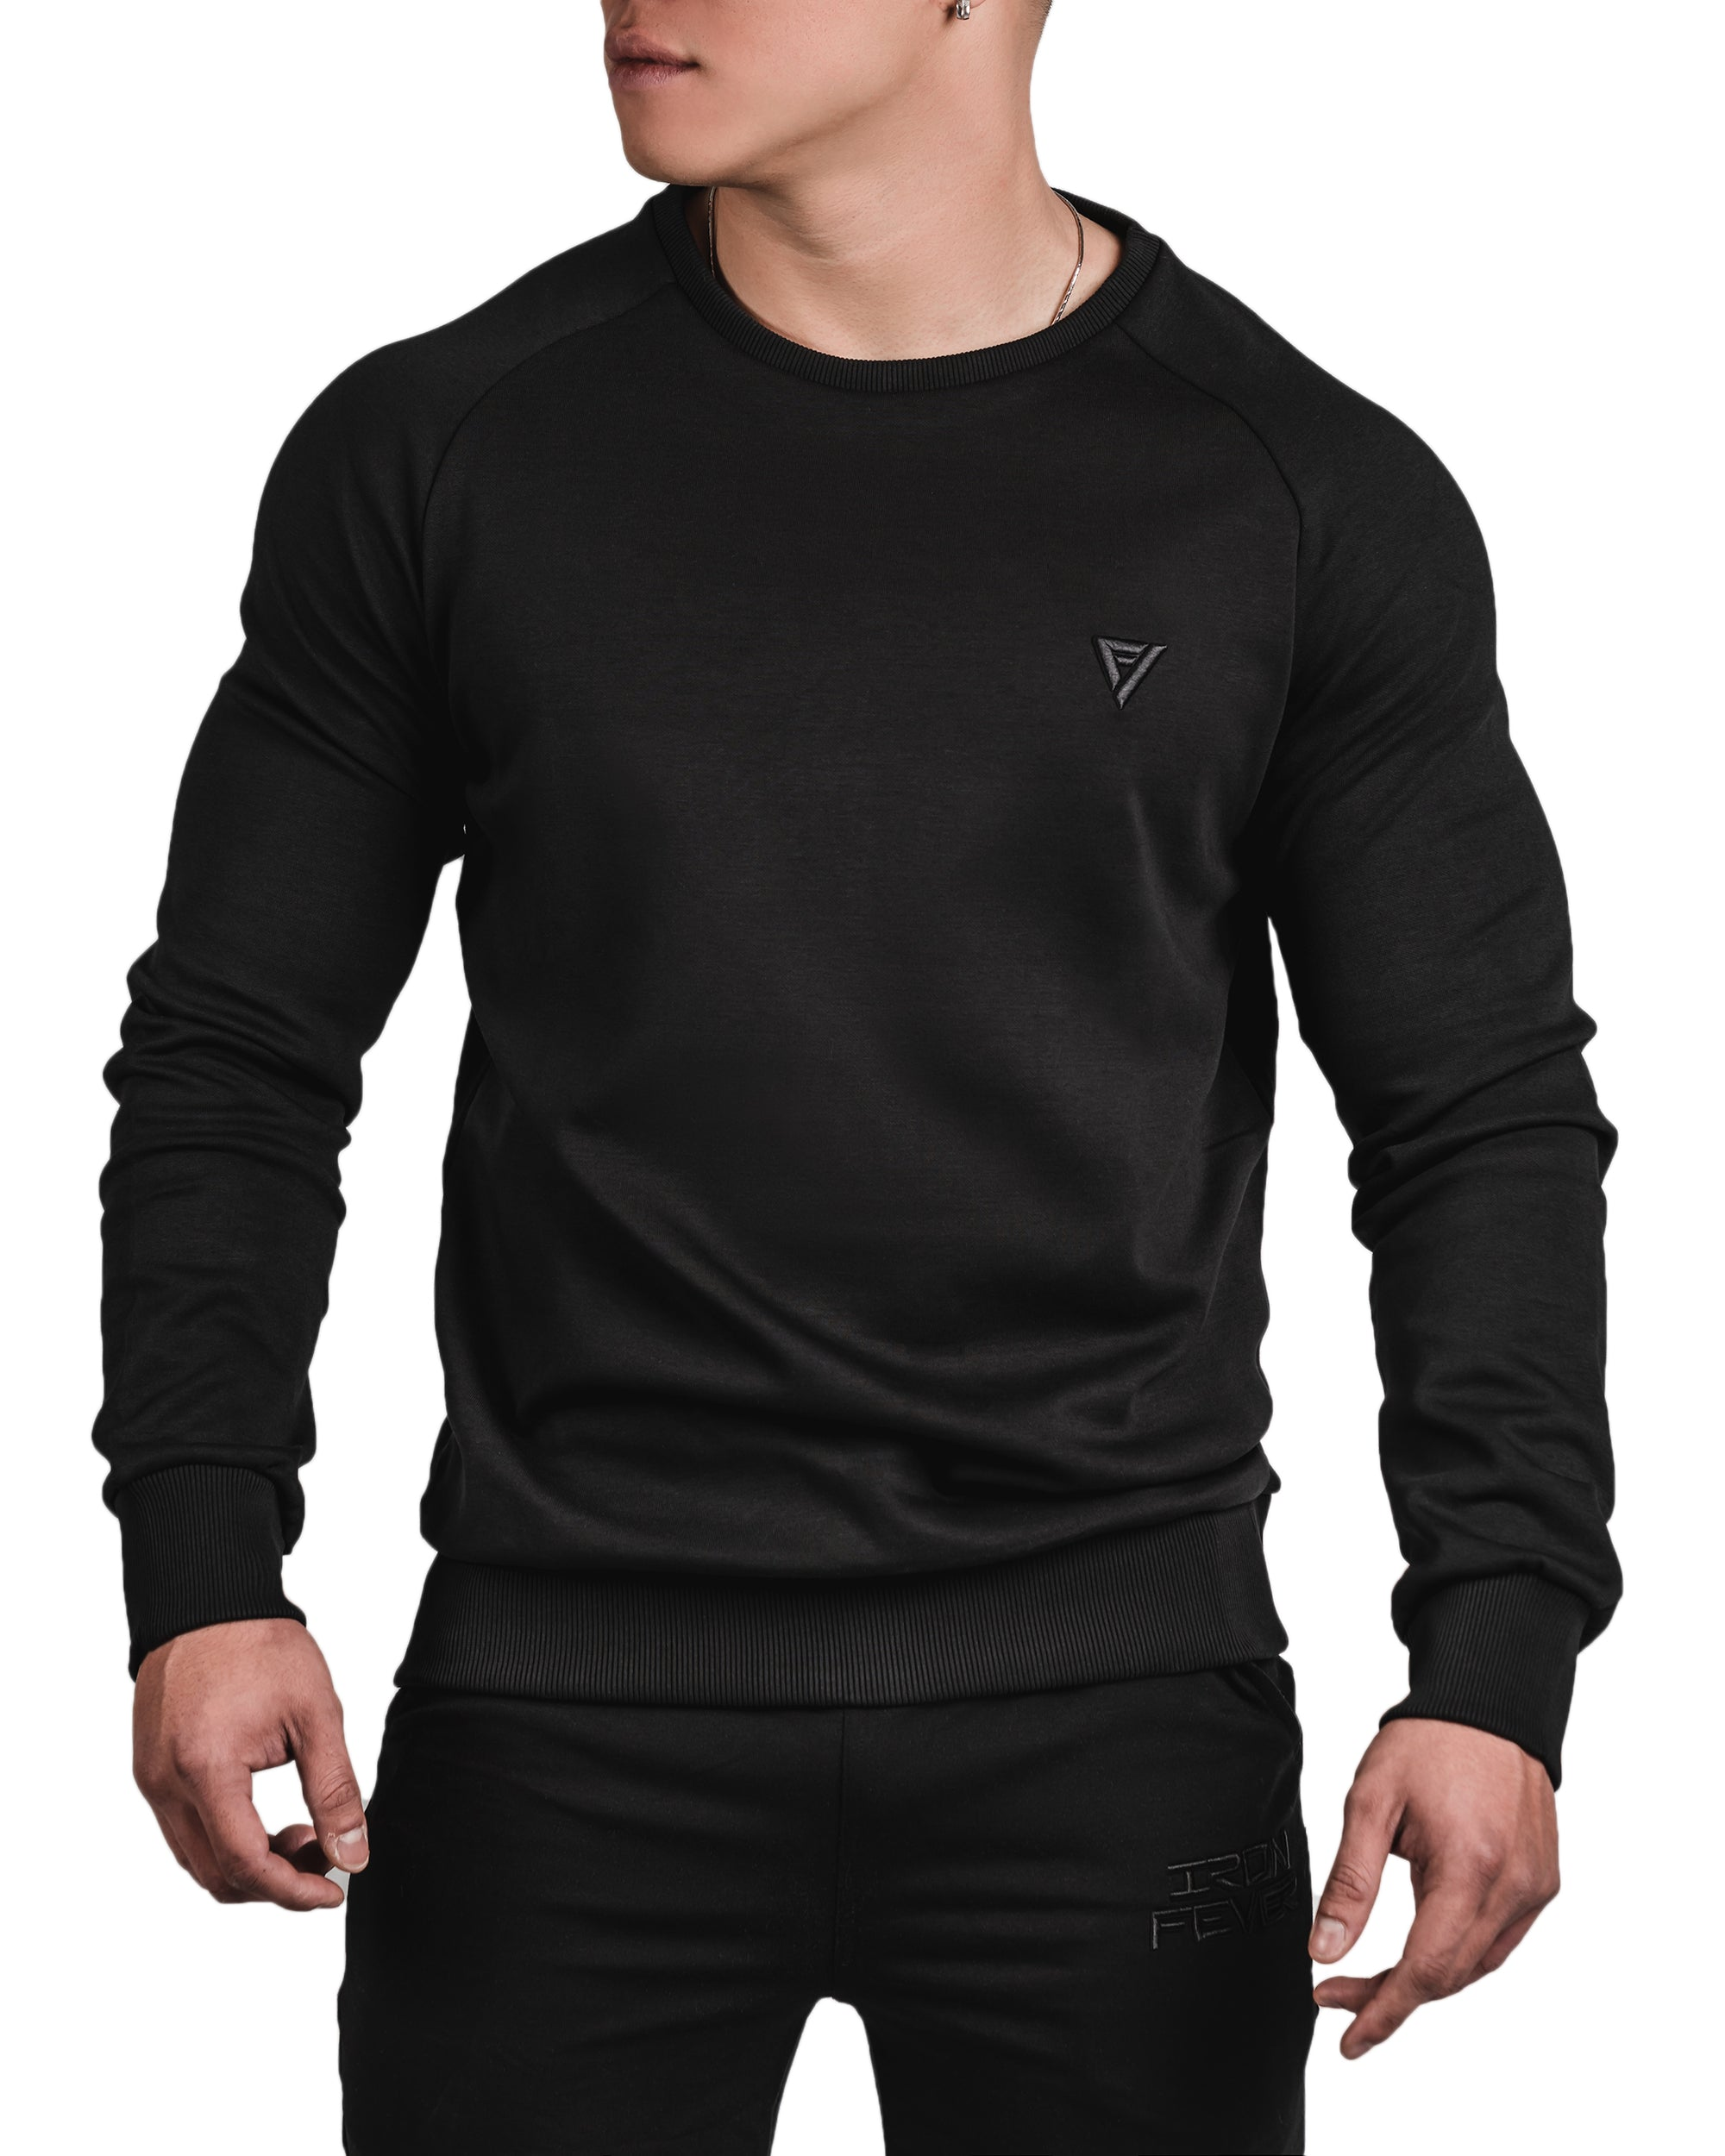 Premium Sweater V1 - Black